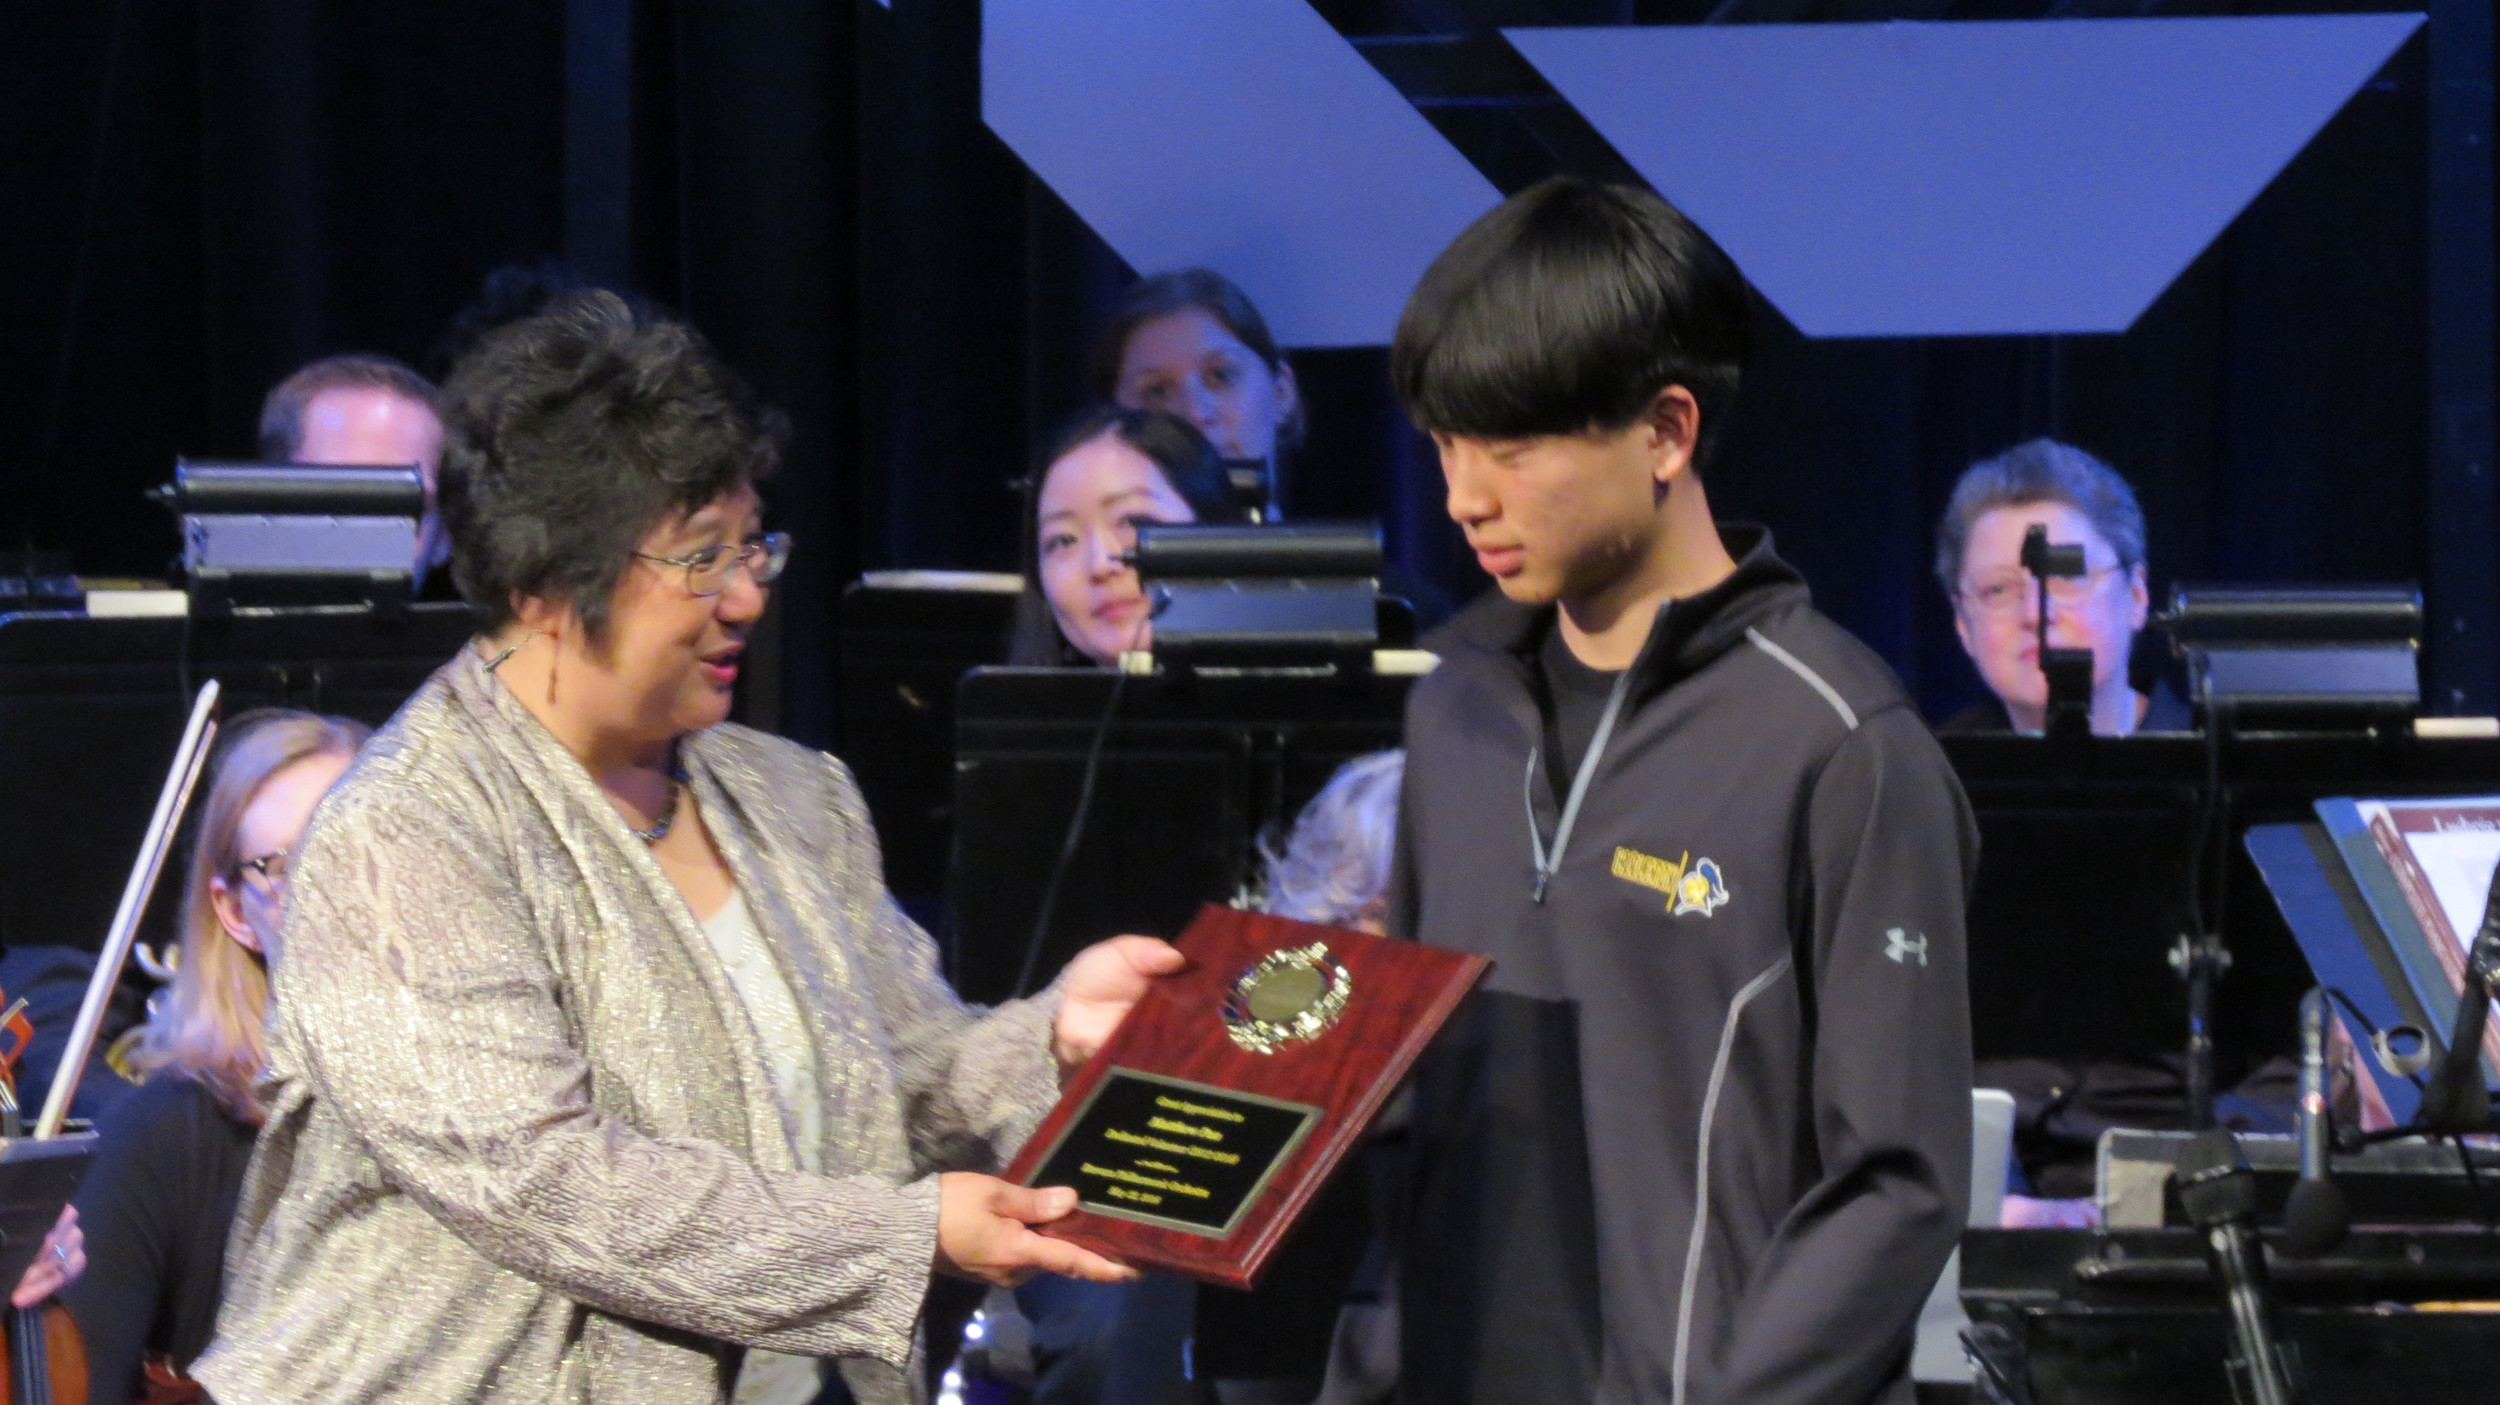 Acknowledging Matthew Pan for his dedicated volunteer work for the orchestra